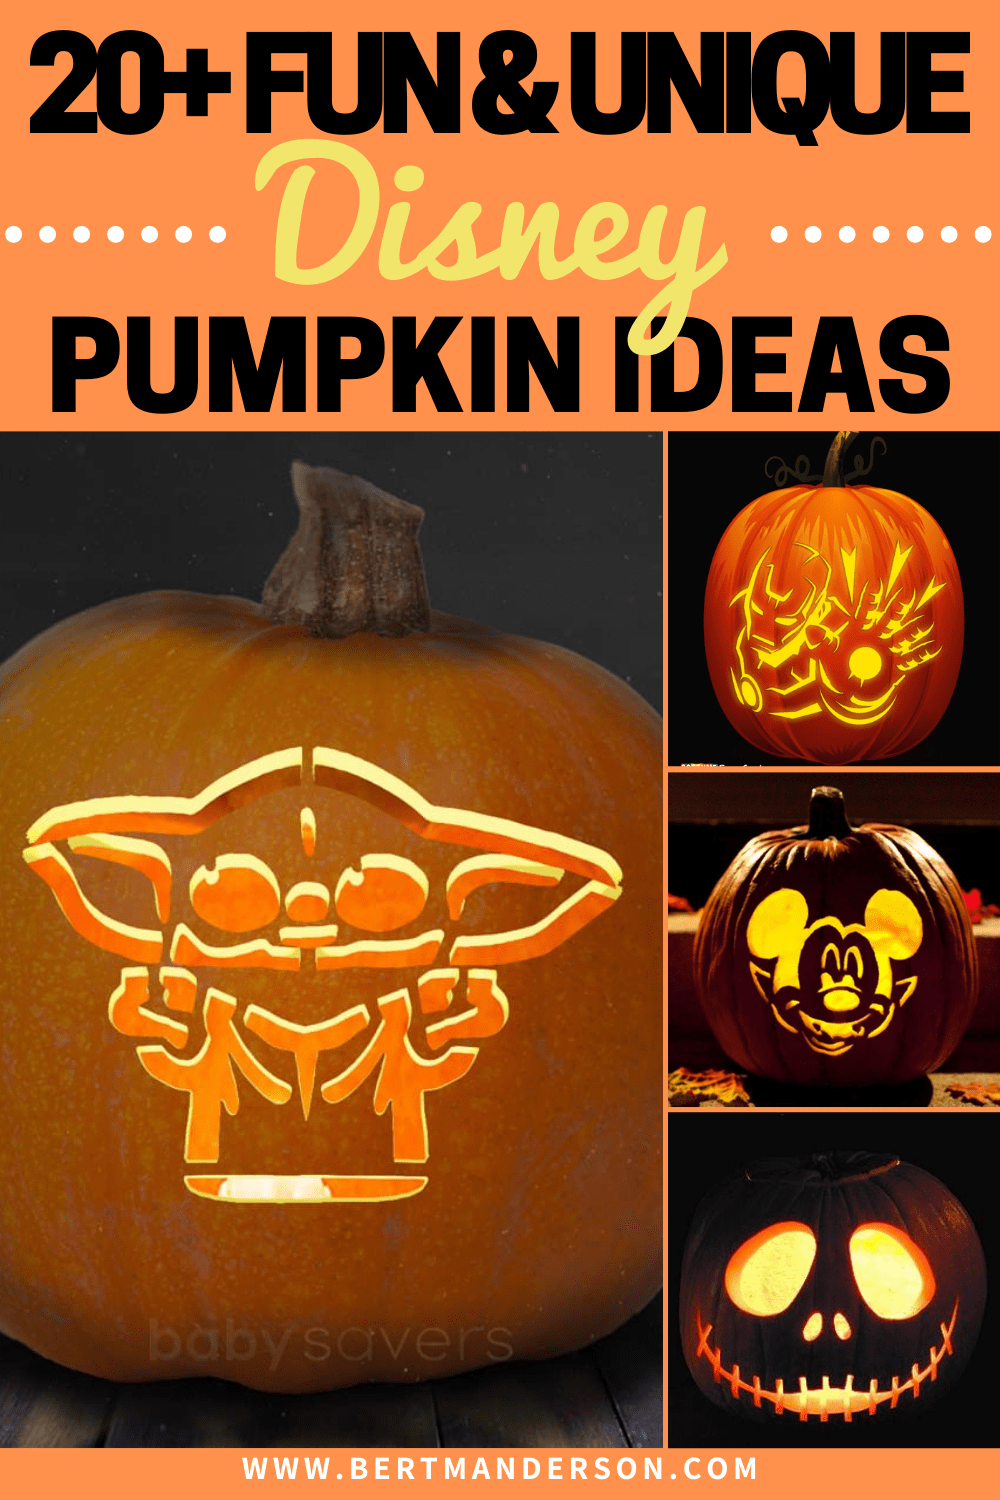 20+ Fun and Unique Disney Pumpkin Carvings